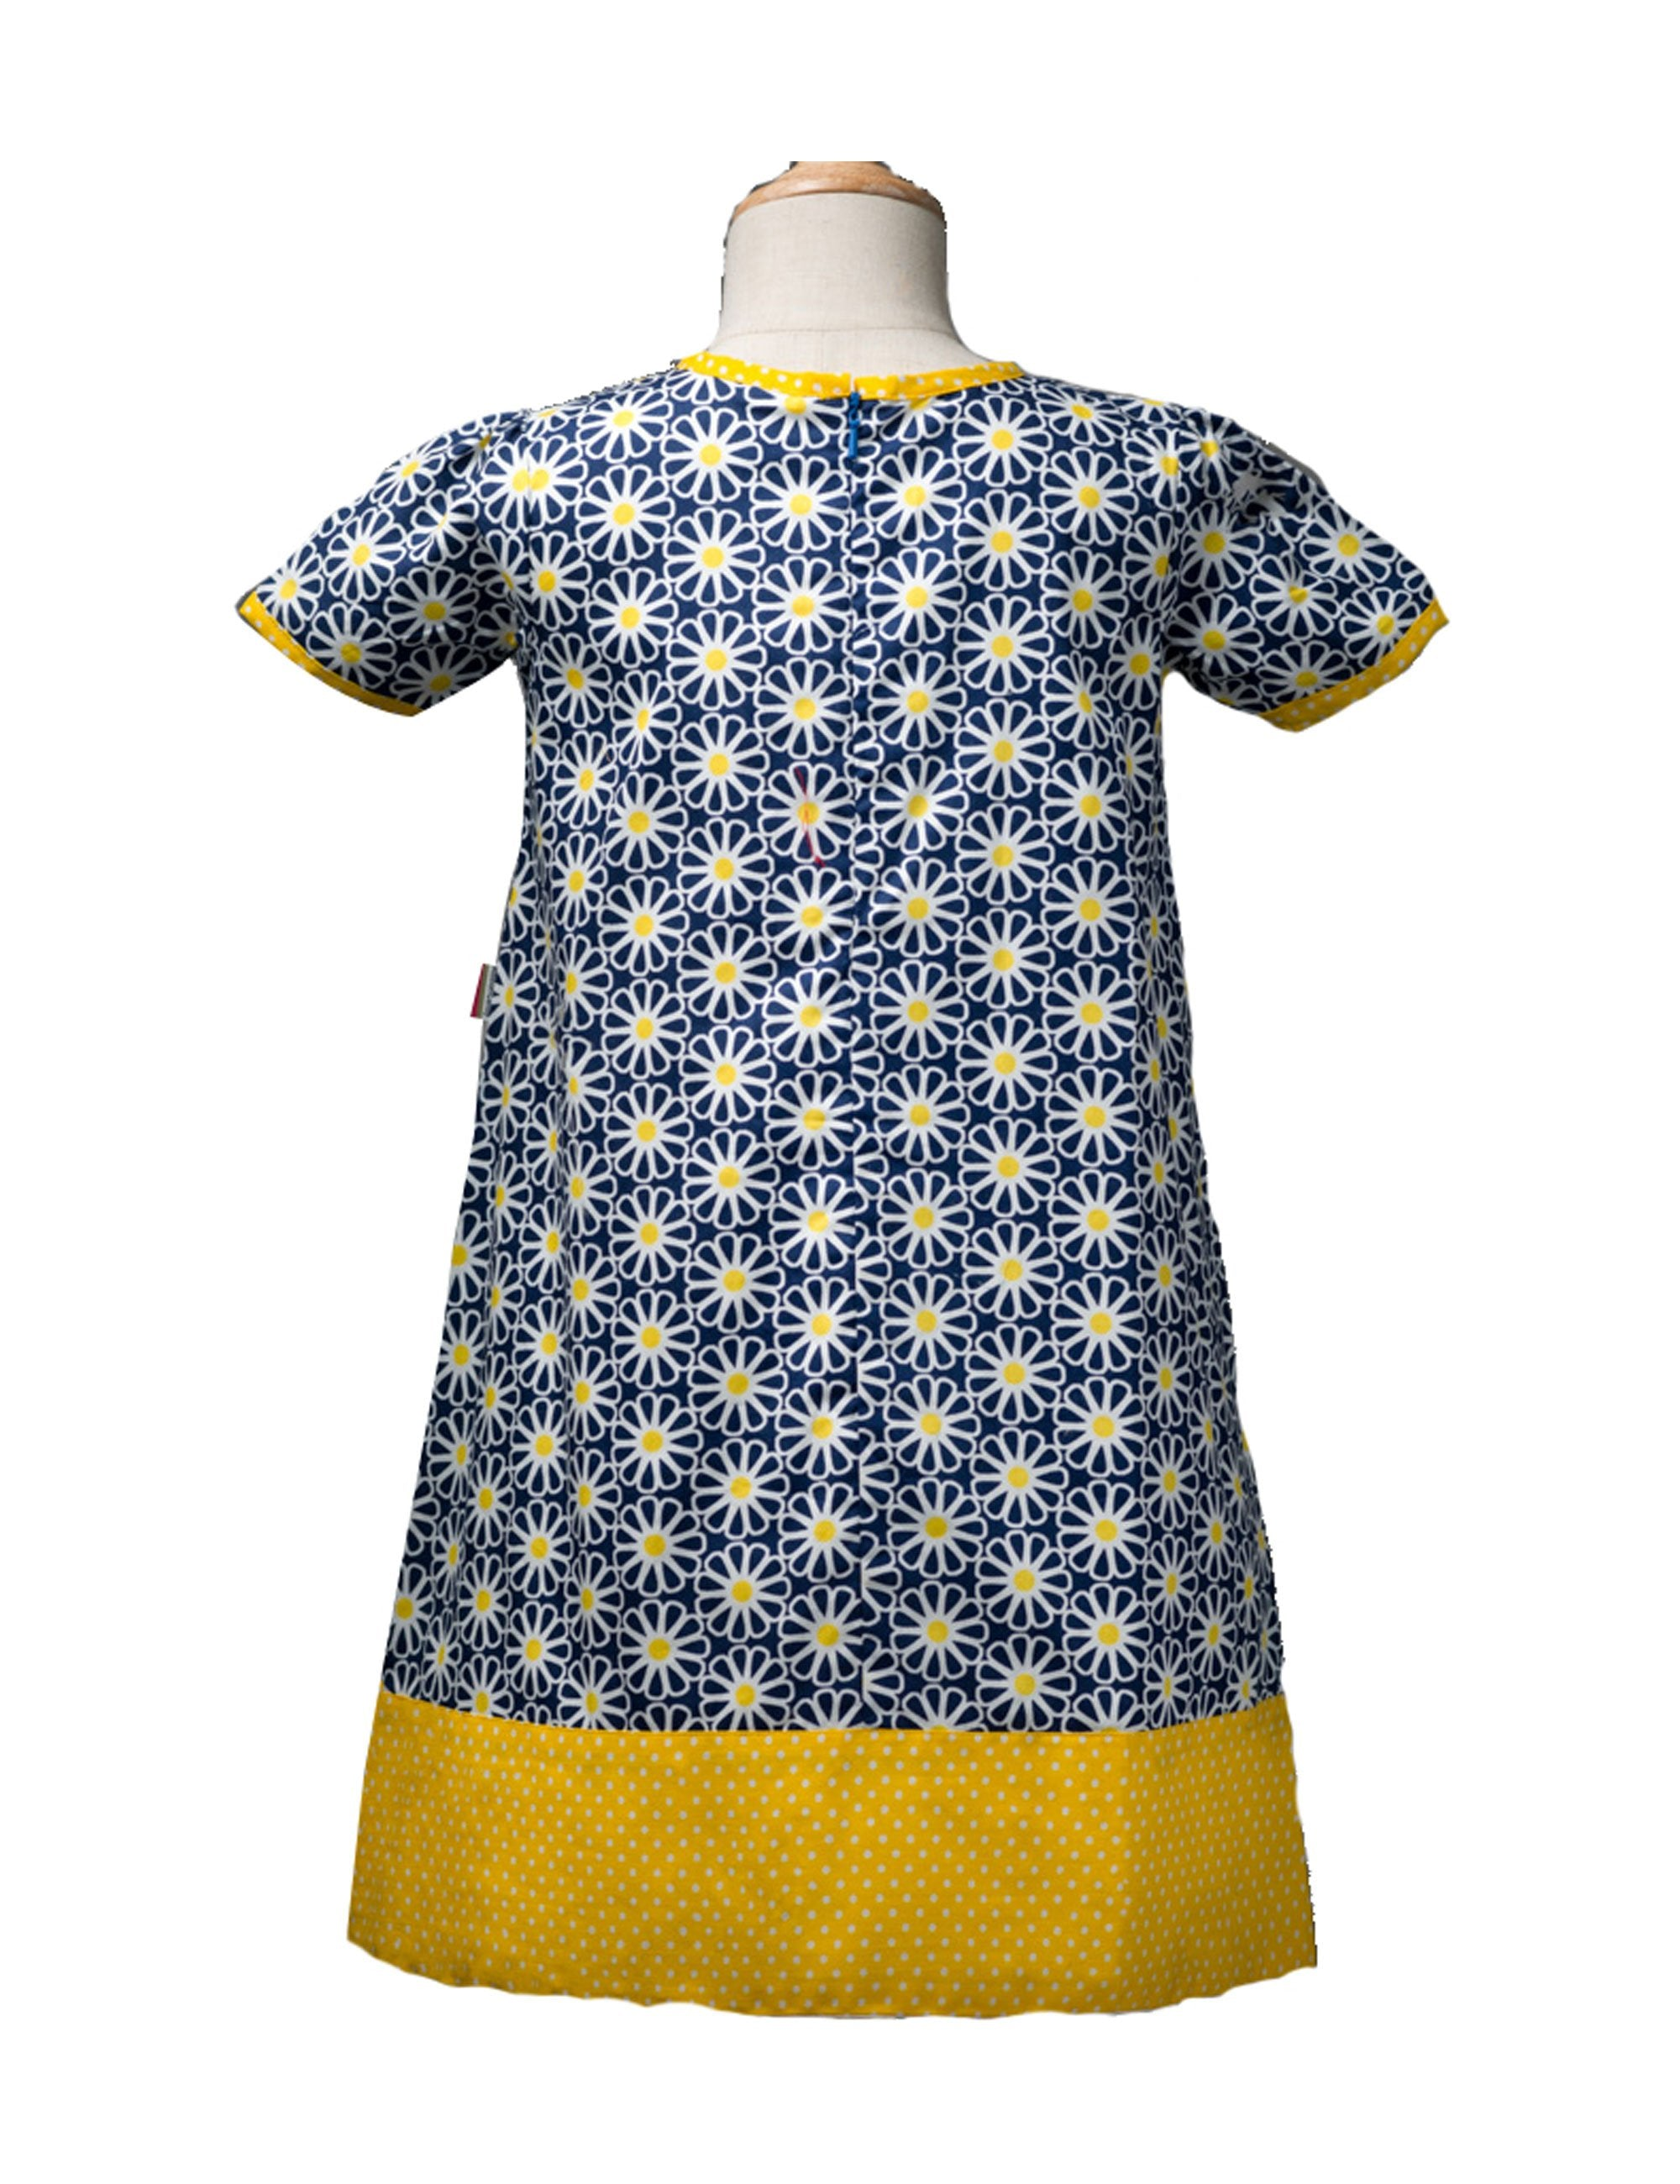 Shift Dress in A Blue Sunflower Print in Yellow Colour for Girls